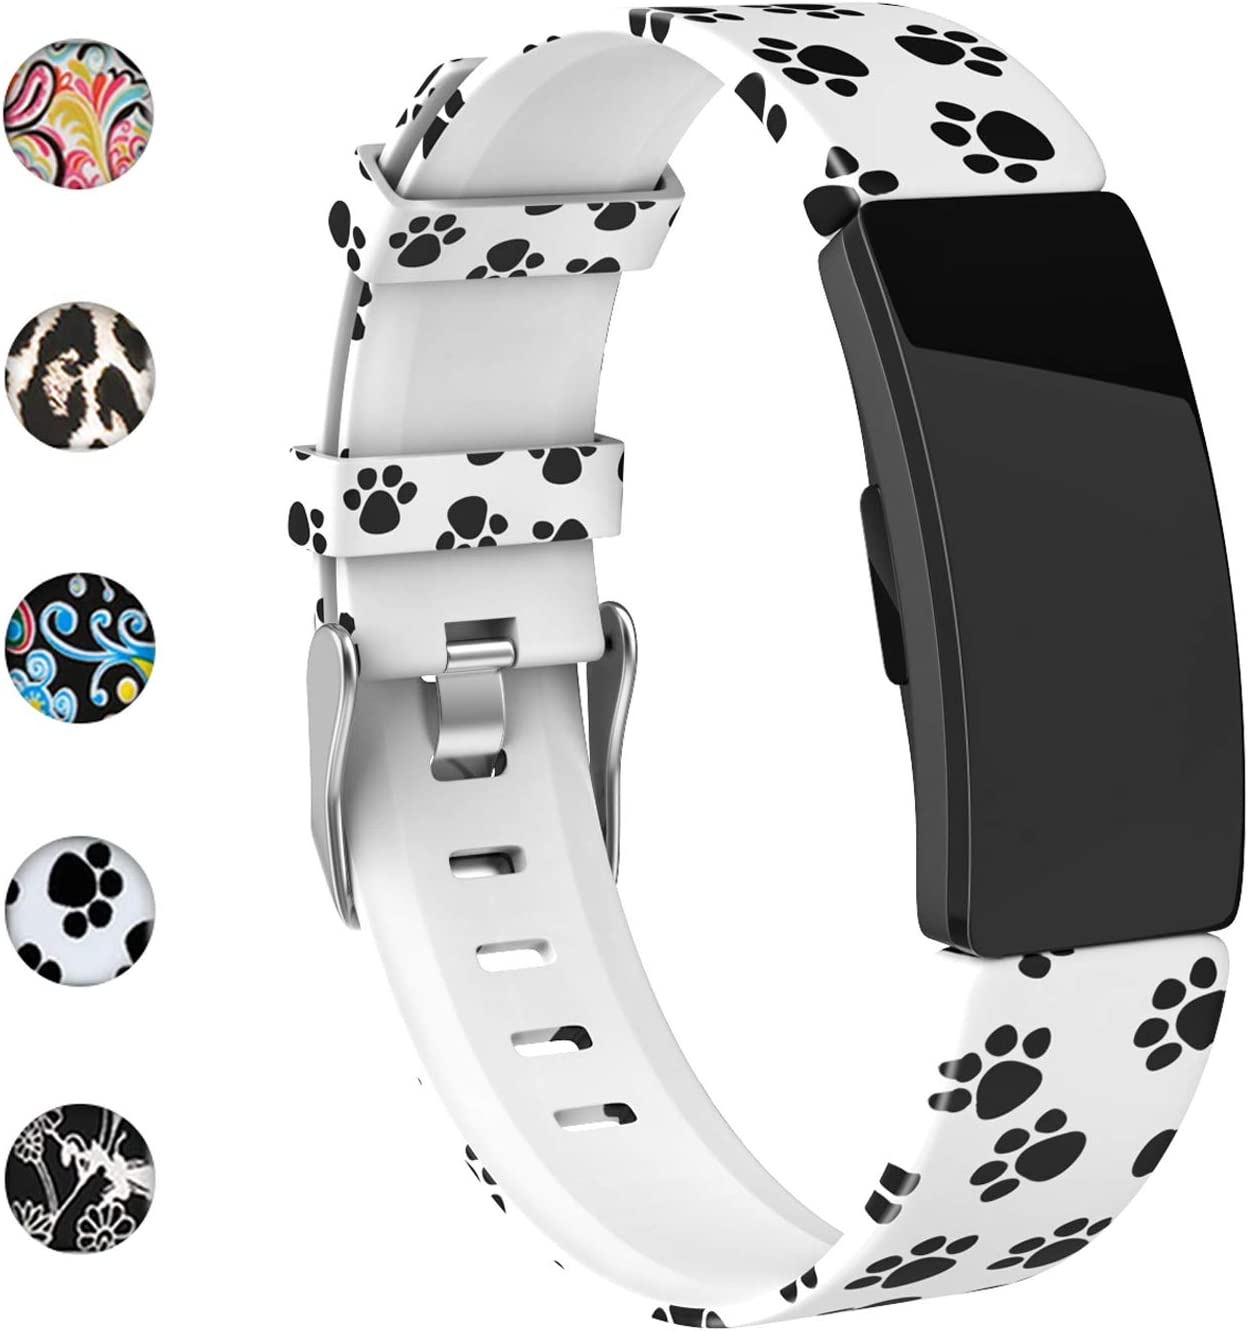 REYUIK Floral Bands Compatible with Fitbit Inspire HR/Inspire/Ace 2, Fadeless Pattern Printed Band Replacement Strap Accessories Wristband Large Small for Inspire HR Women Men…